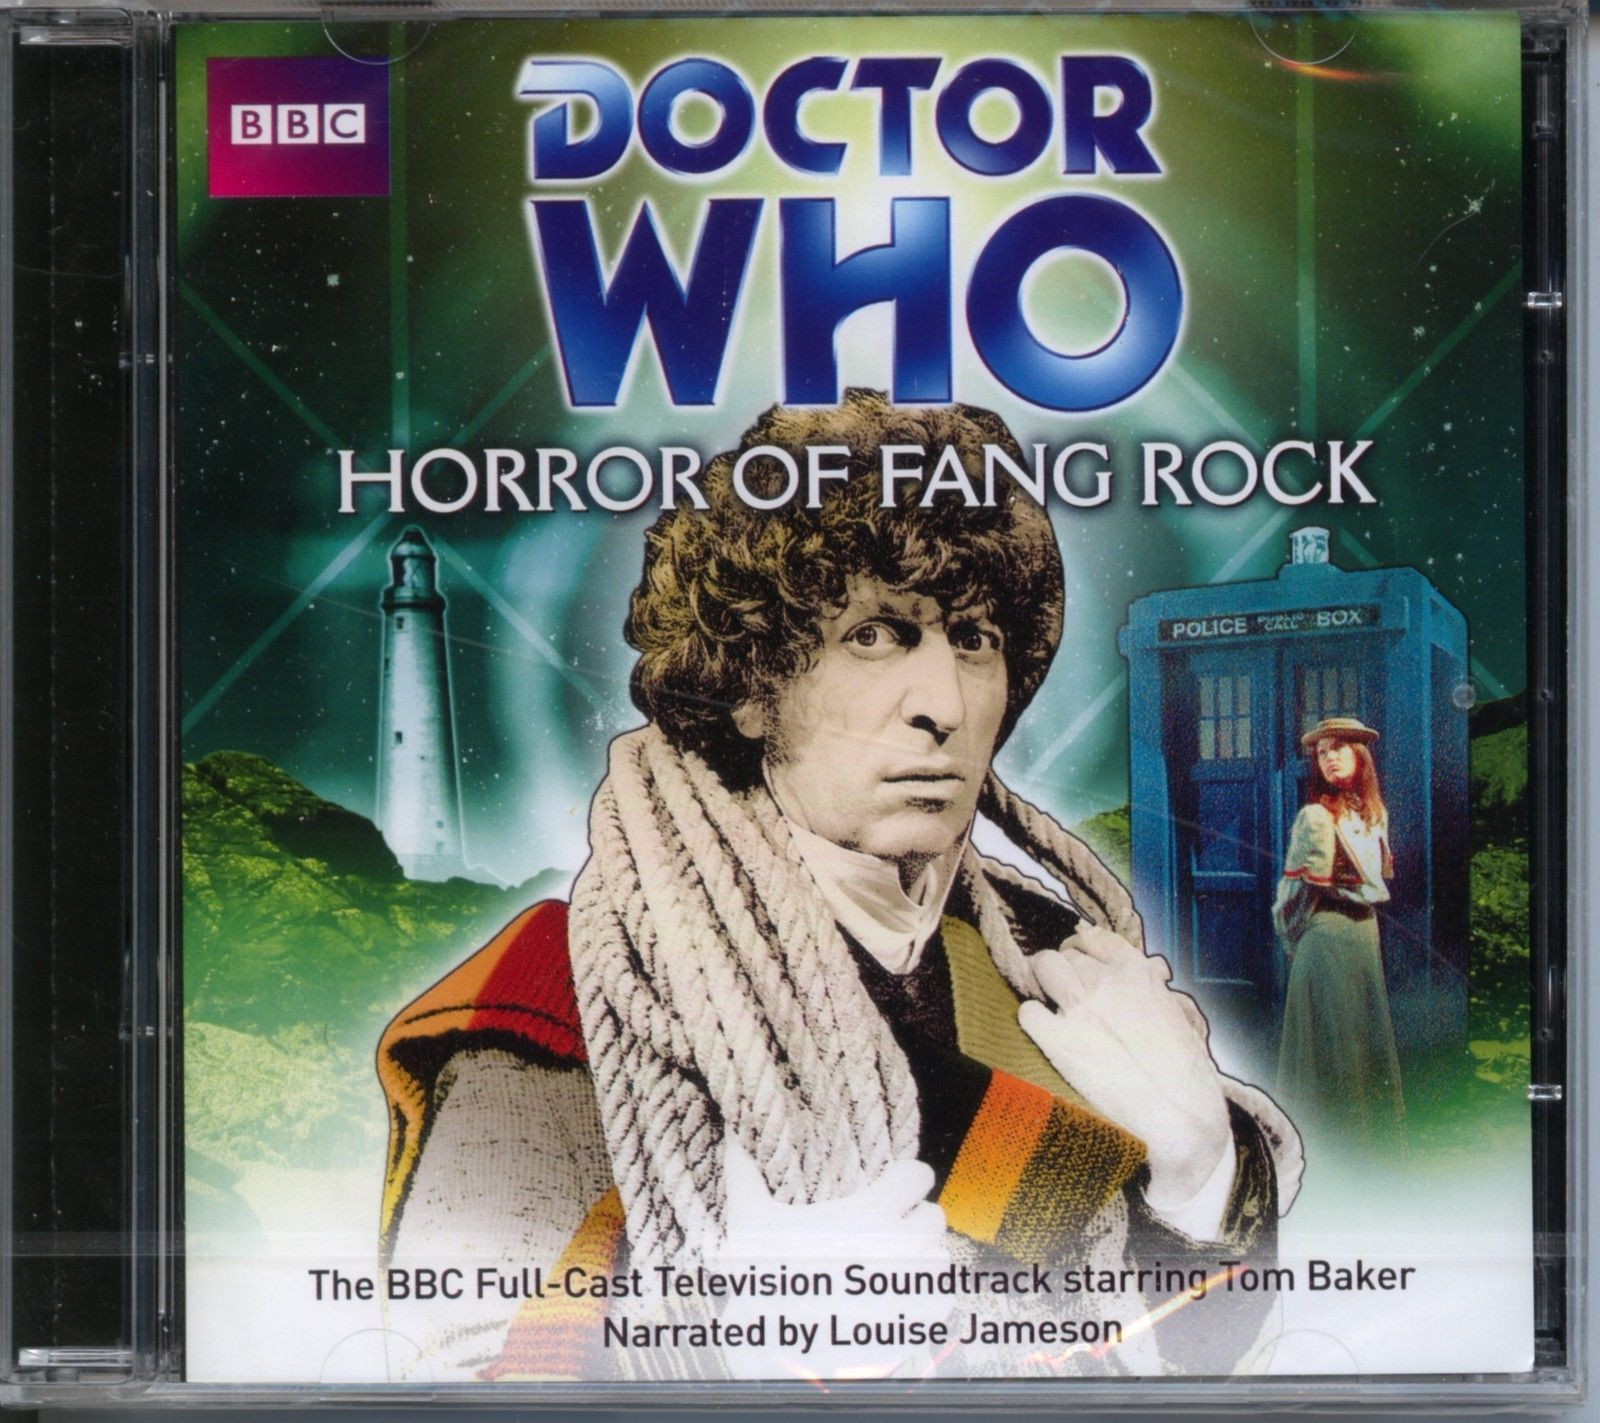 Pin On Bbc Doctor Who Audio Dramas And Audio Stories